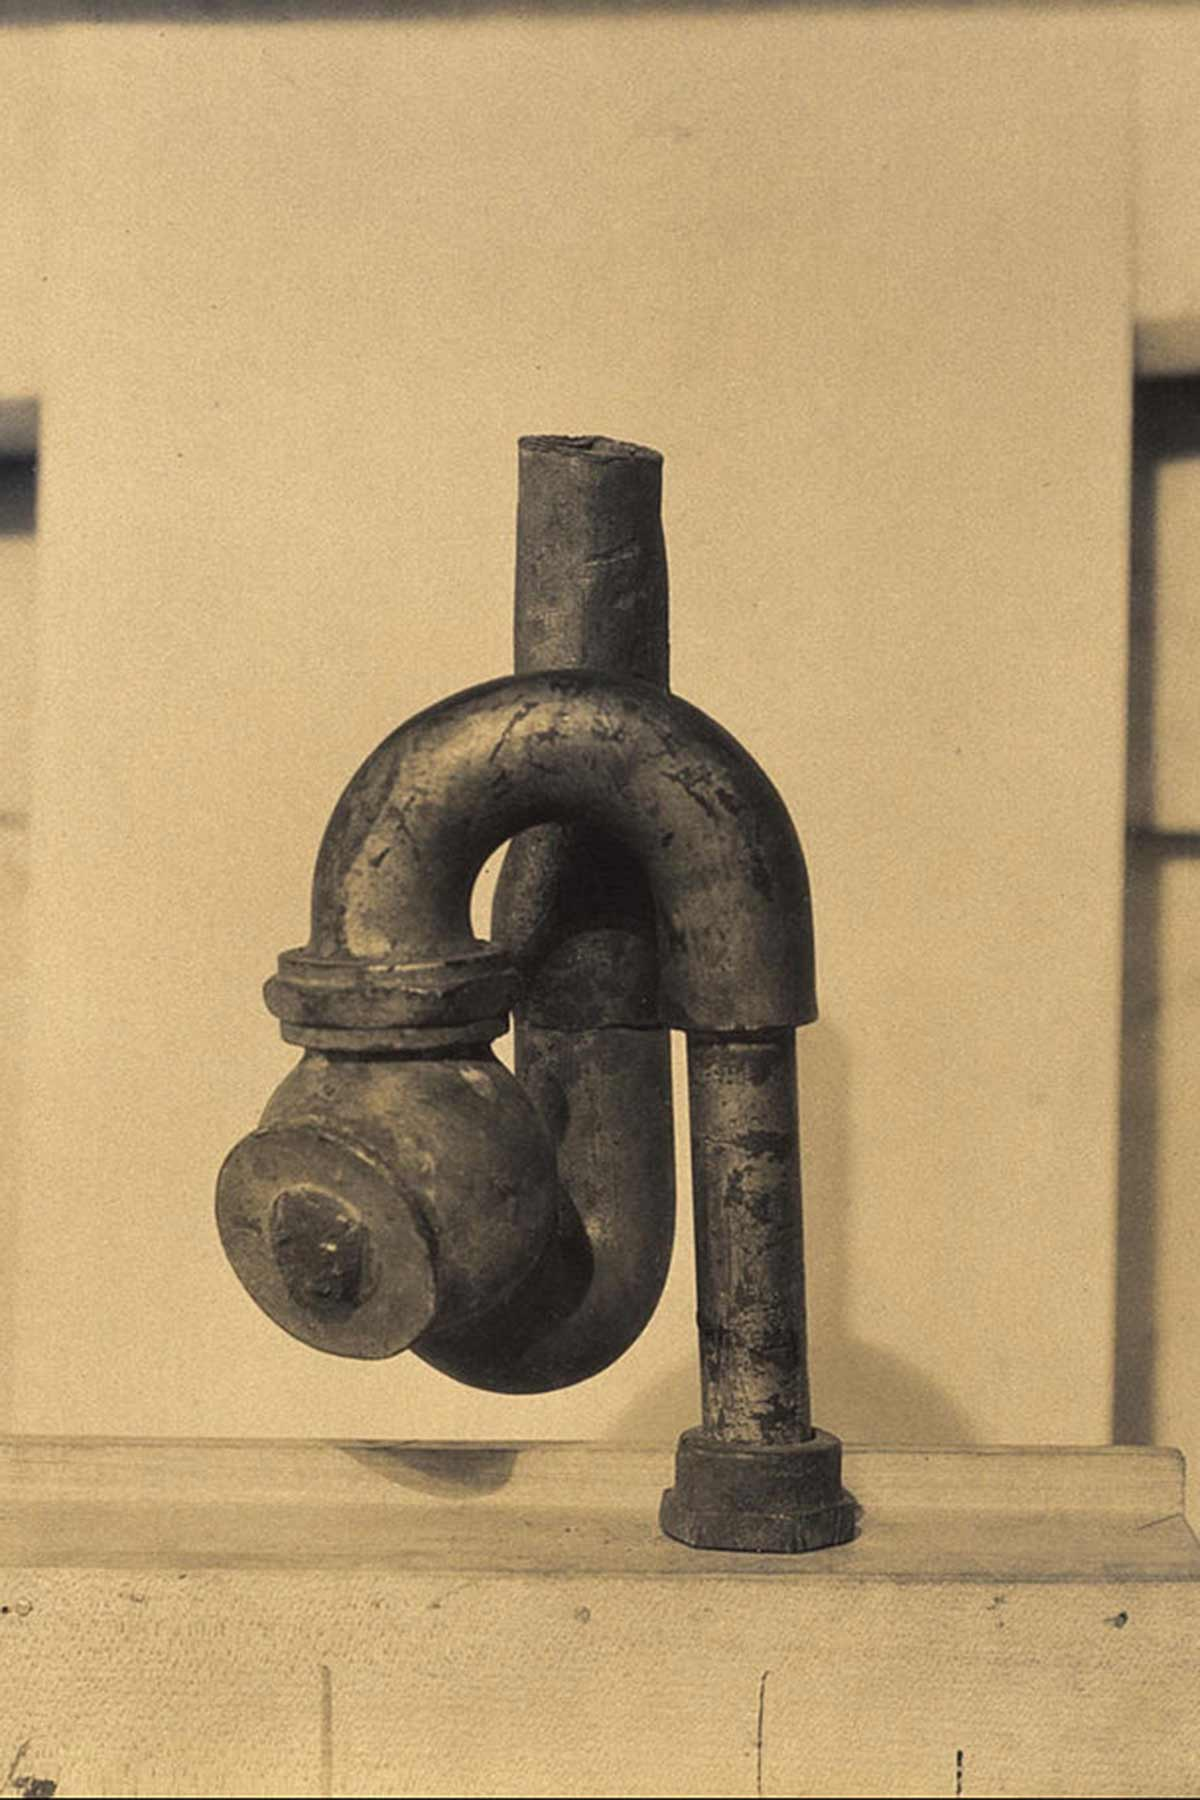 Dada sculpture of plumbing.